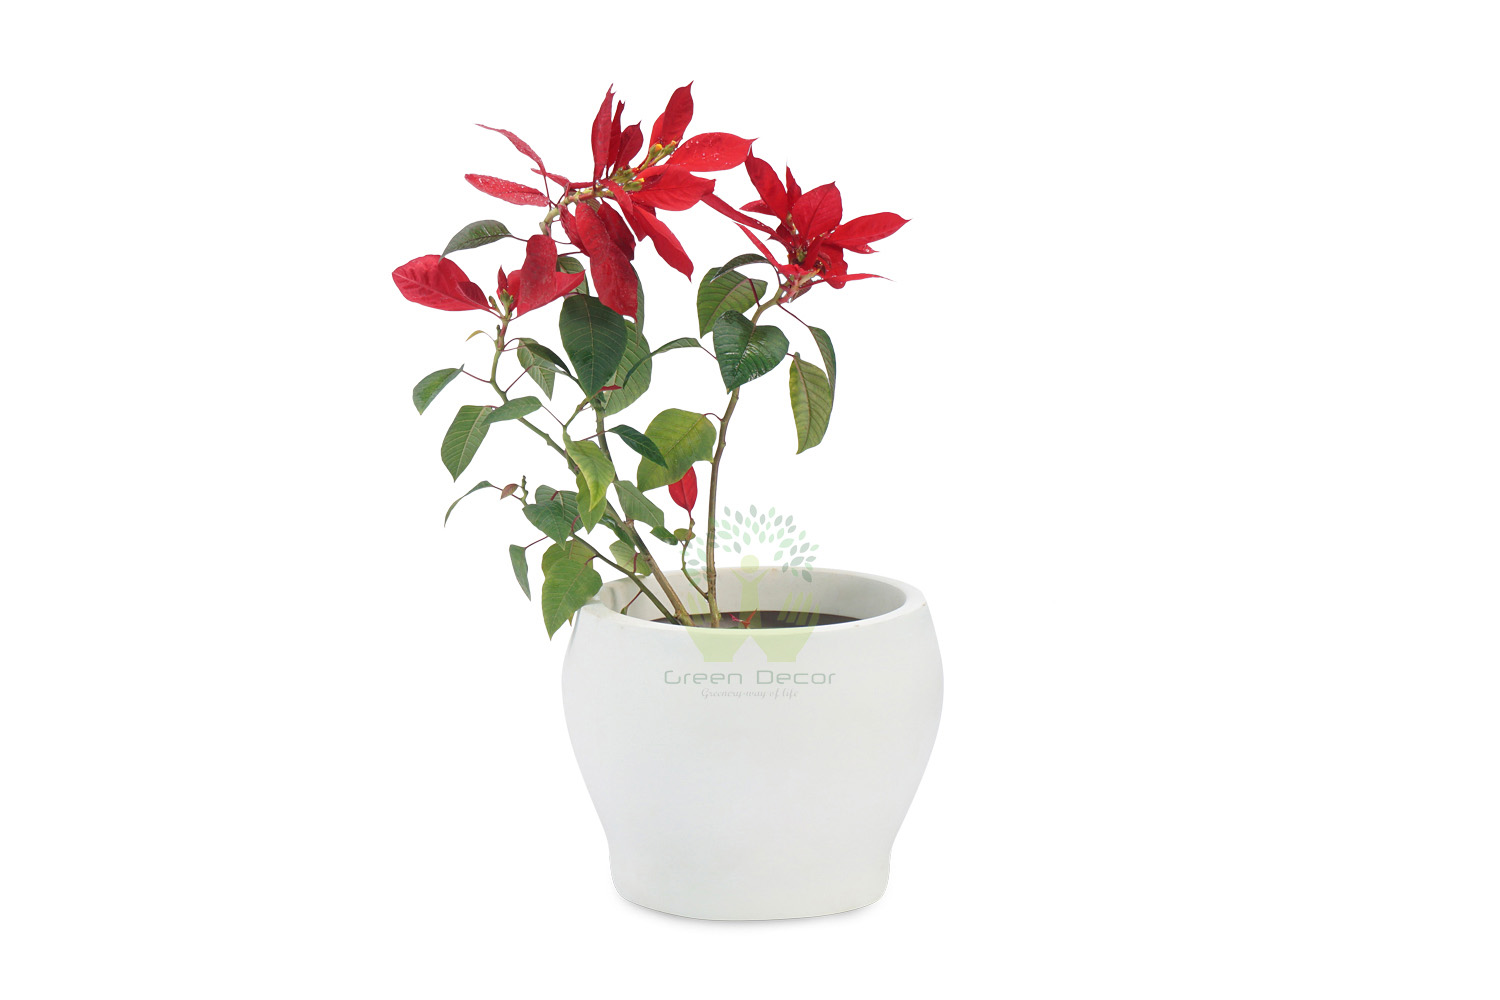 Buy Poinsettia Plants , White Pots and seeds in Delhi NCR by the best online nursery shop Greendecor.